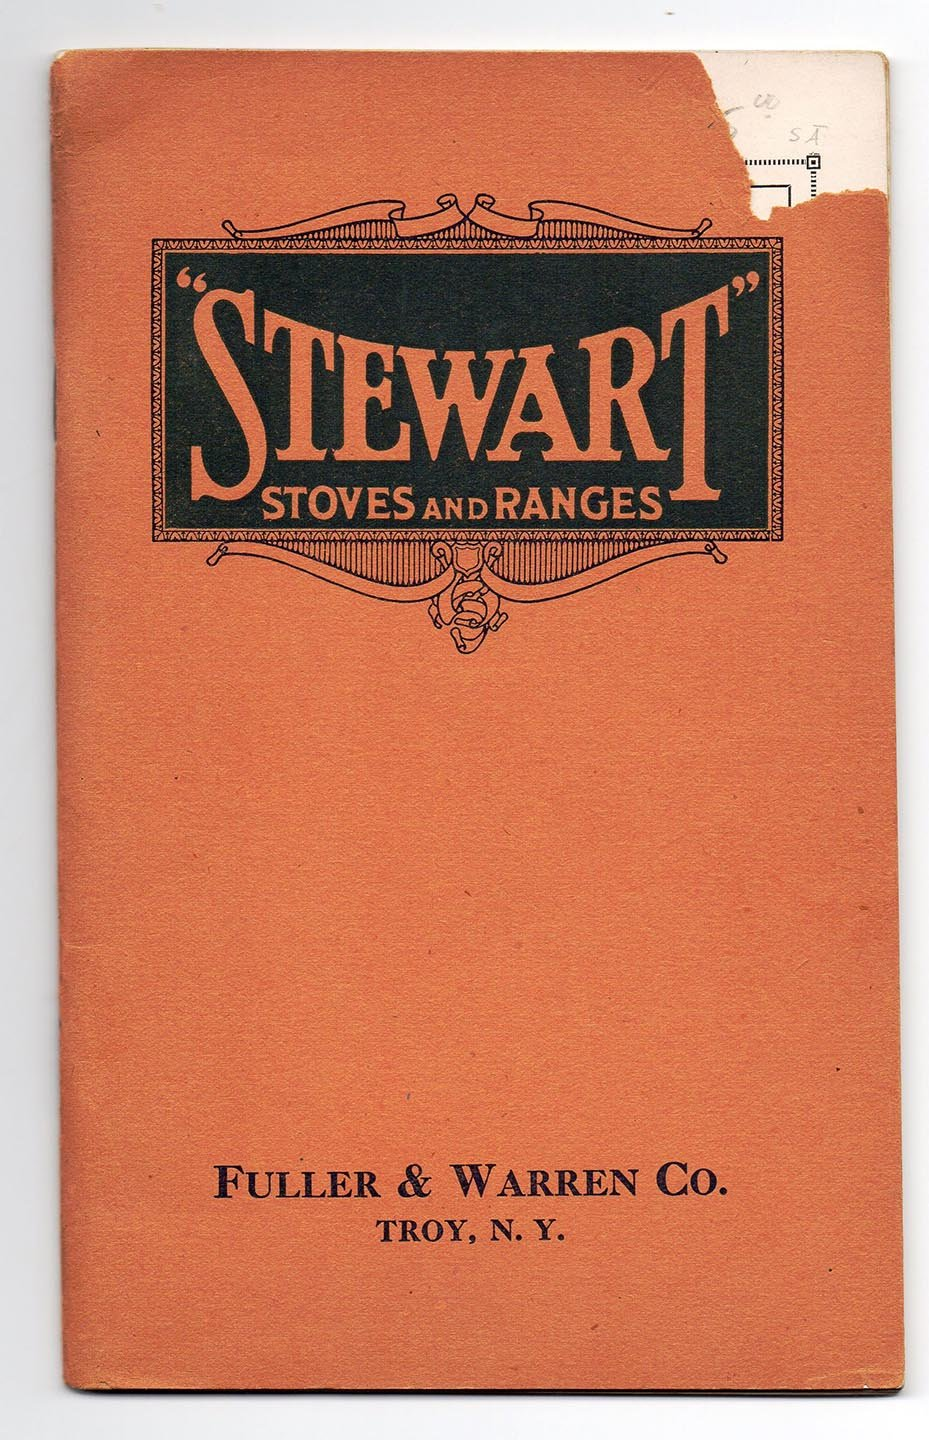 Stewart Stoves and Ranges catalogue, 1922